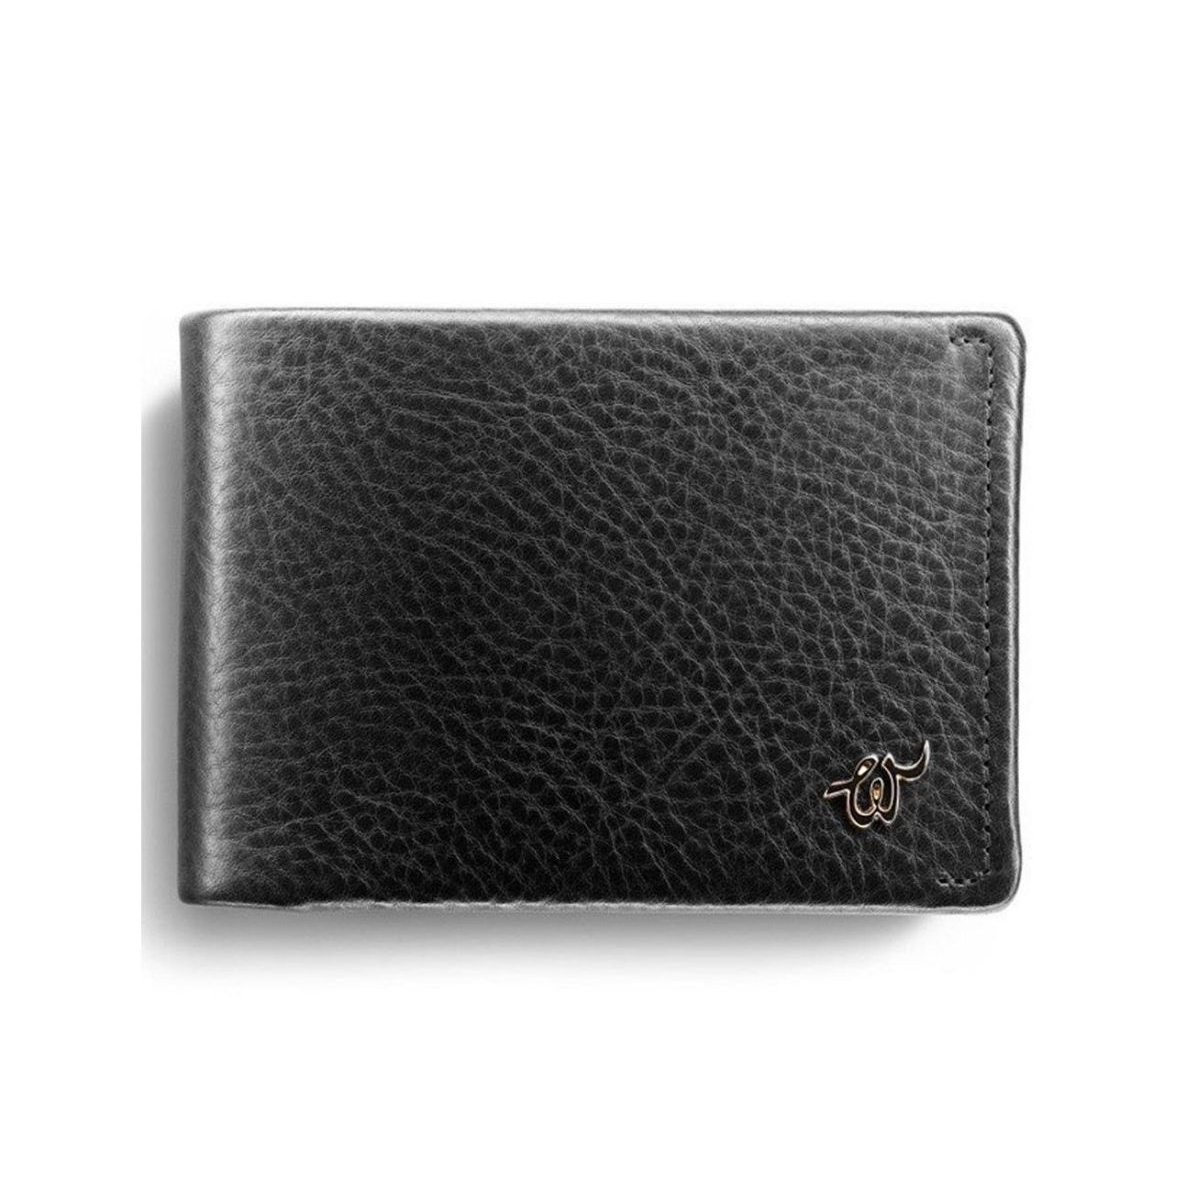 WOOLET Smart Leather Wallet with a Mobile App - Black